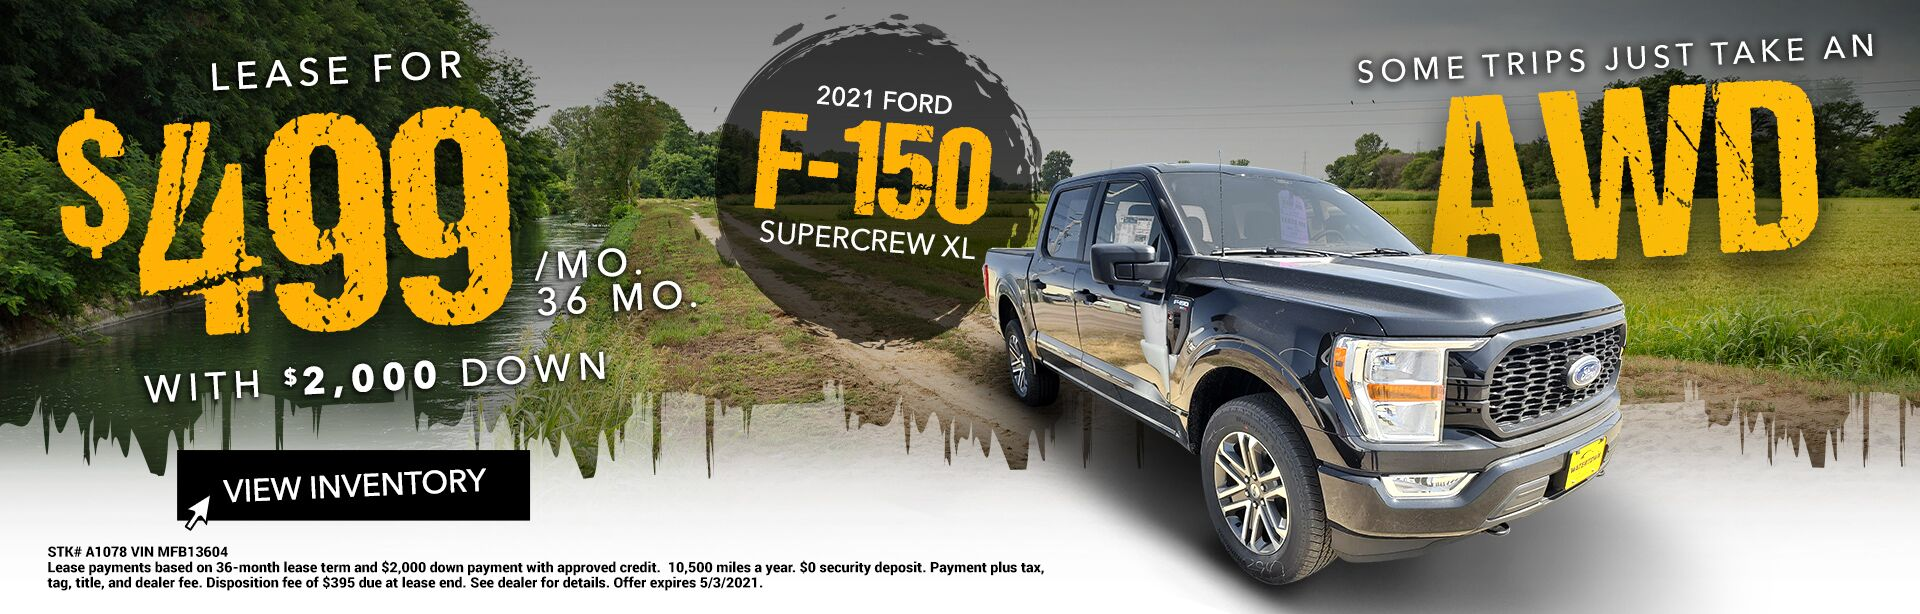 2021 Ford F-150 Supercrew XL